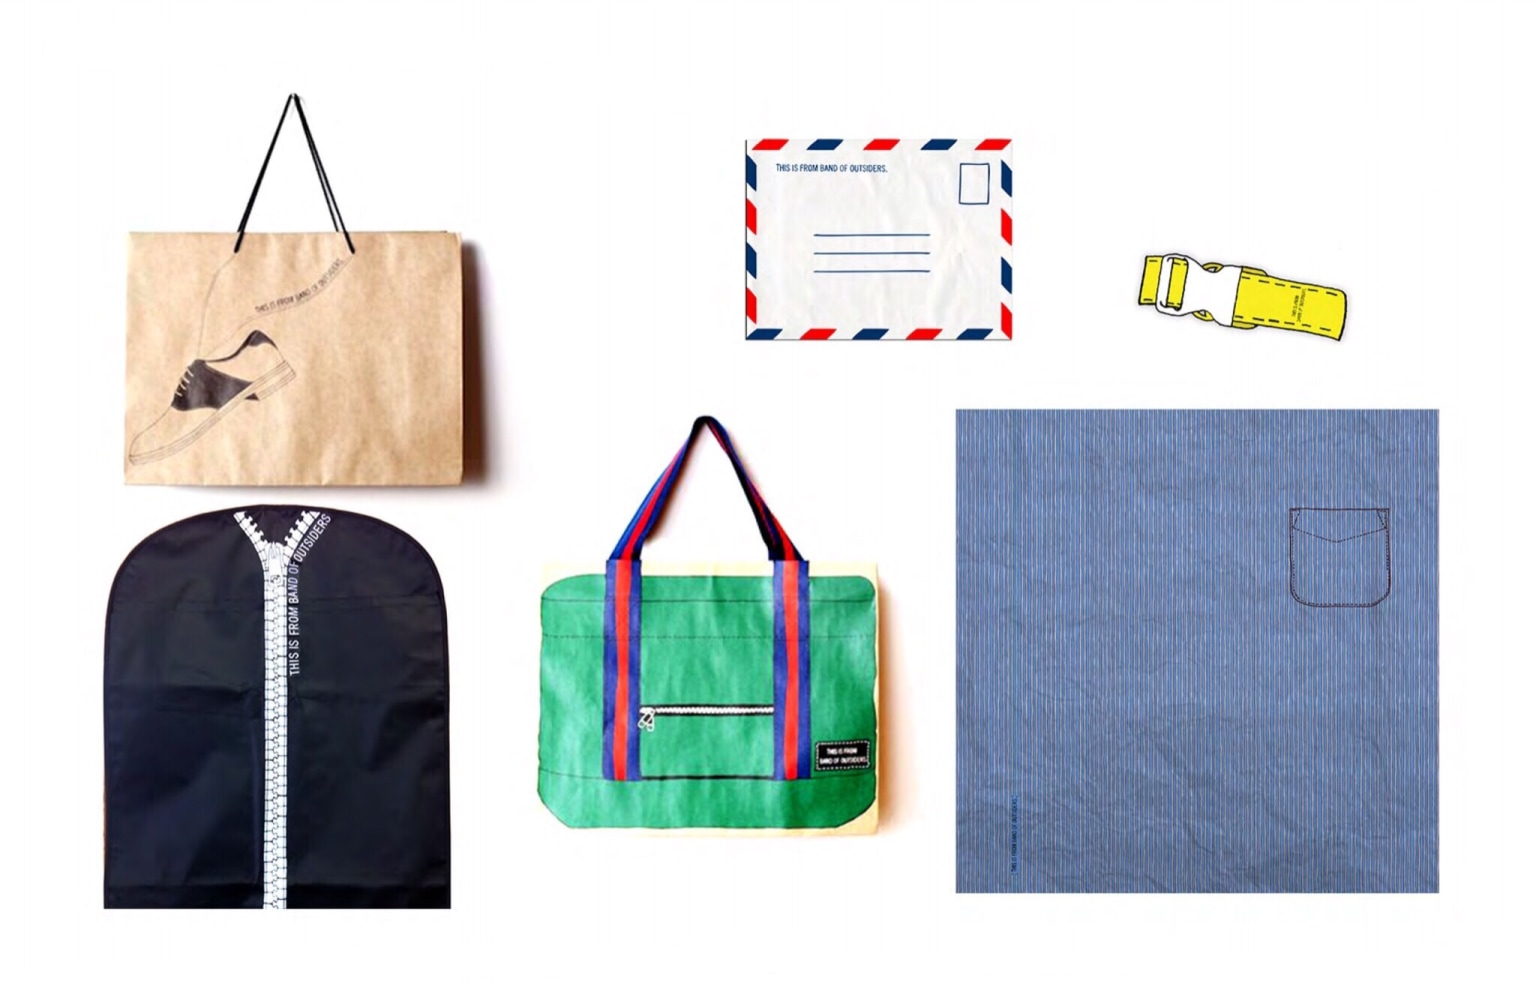 Band of Outsiders Packaging